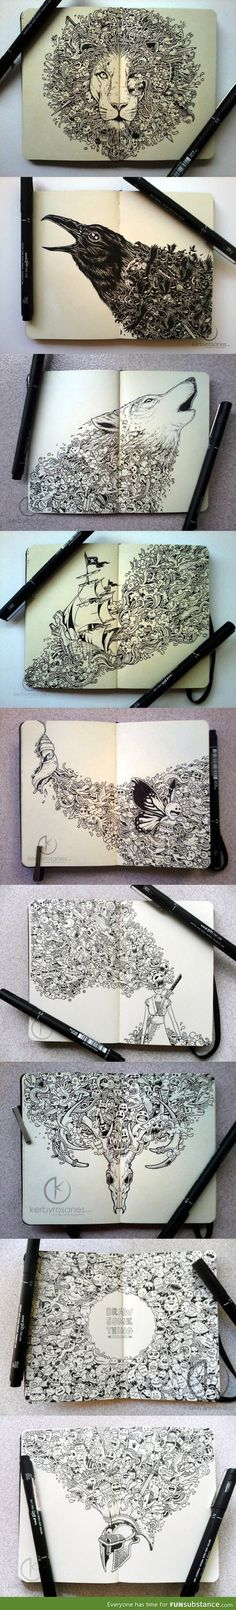 Incredible moleskine drawings by Kerby Rosanes.